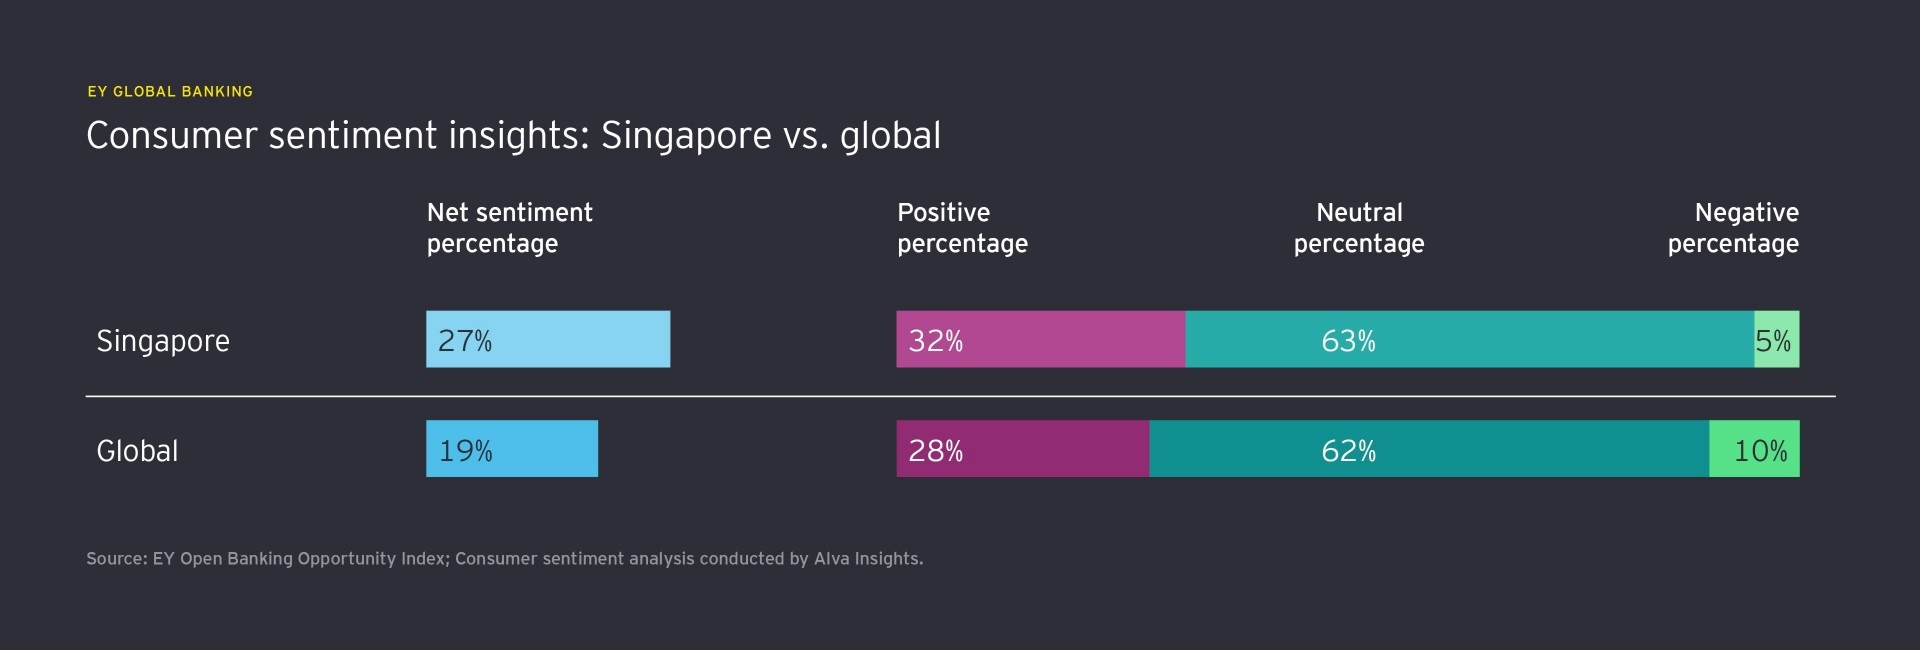 Singapore vs. Global: Consumer sentiment insights